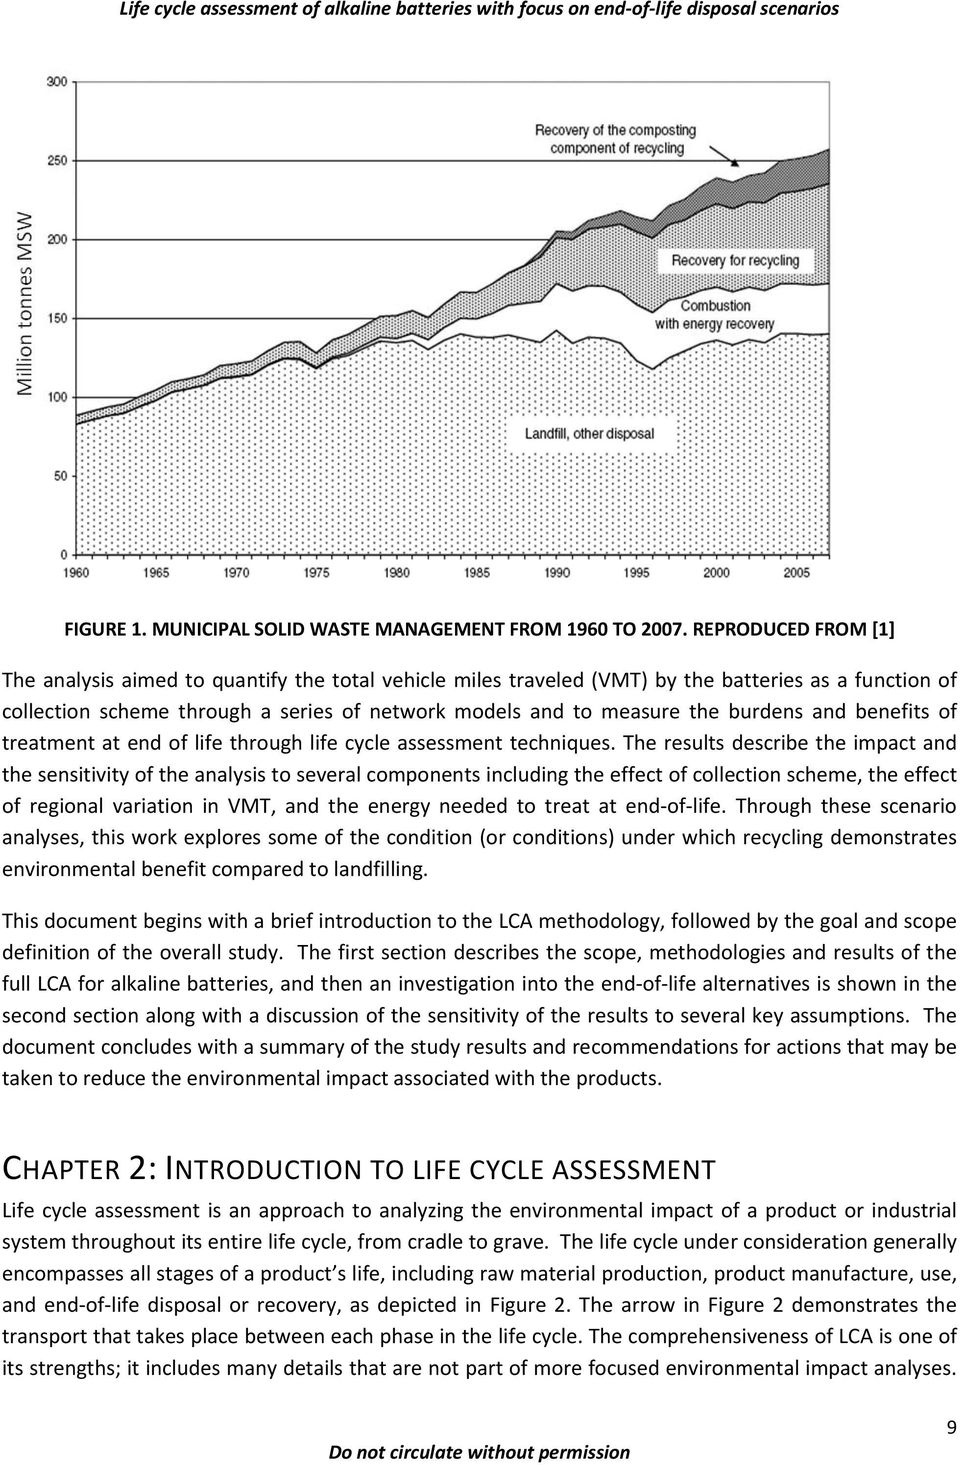 burdens and benefits of treatment at end of life through life cycle assessment techniques.